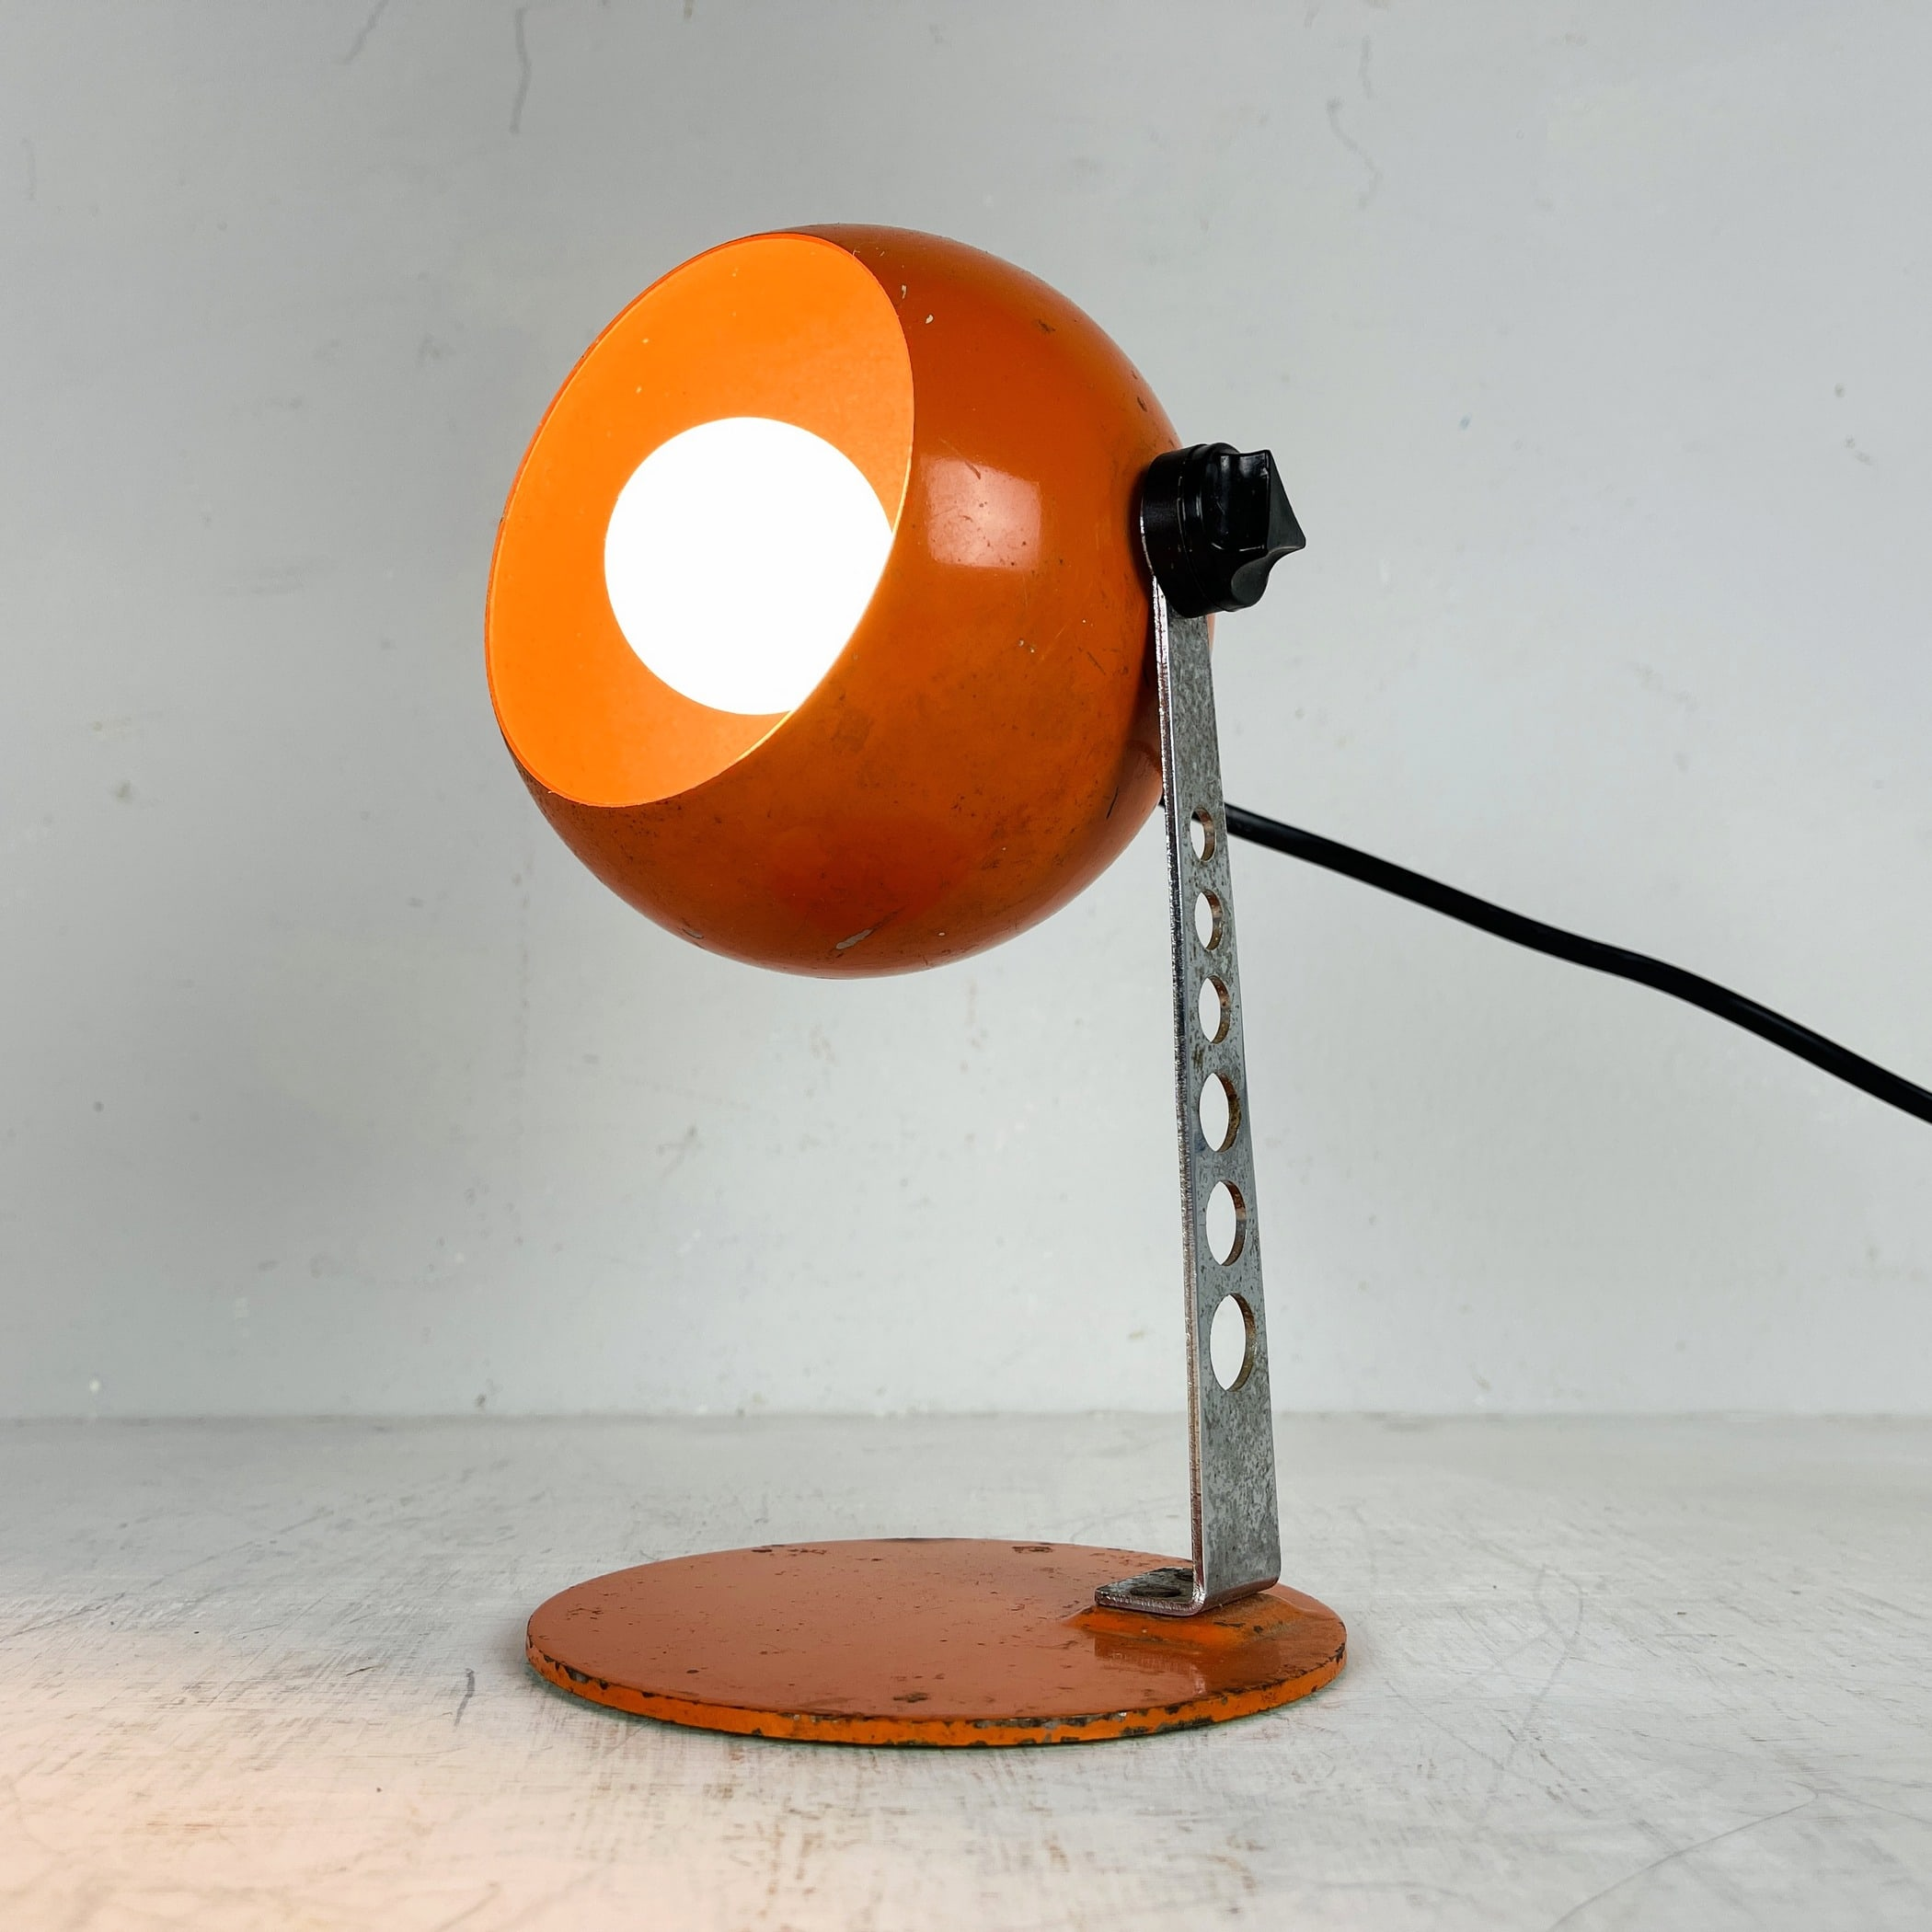 Mid-century orange metal desk lamp Eyeball by Targetti Sankey Italy 1960s Industrial table lamp